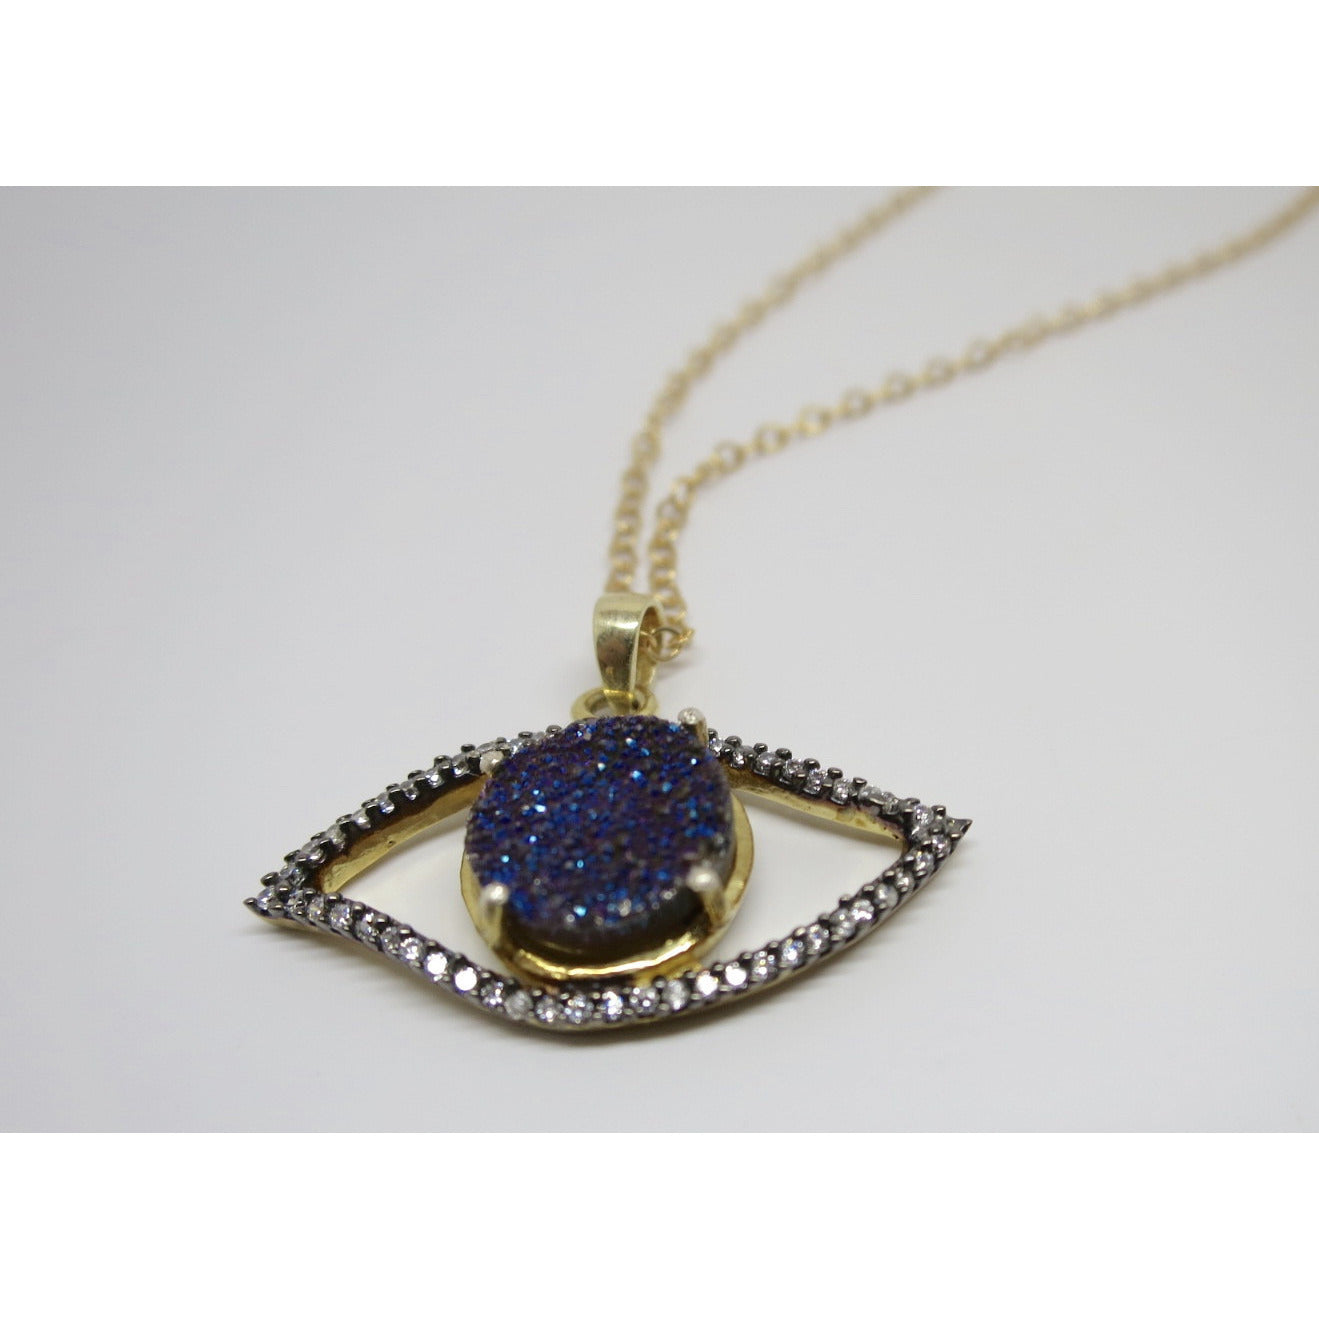 Gold Filled Evil Eye Genuine Druzy and Topaz Pendant Necklace - Pretty Princess Style  - 2